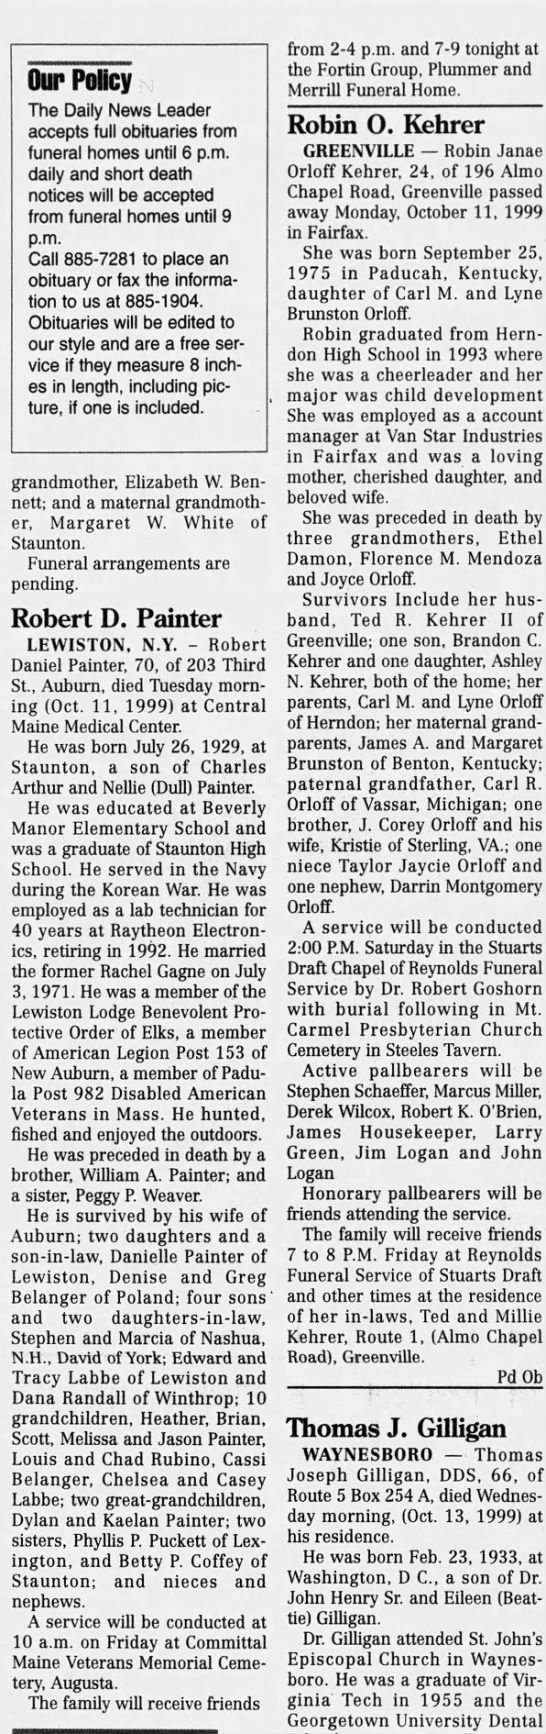 Robert Daniel Painter obit